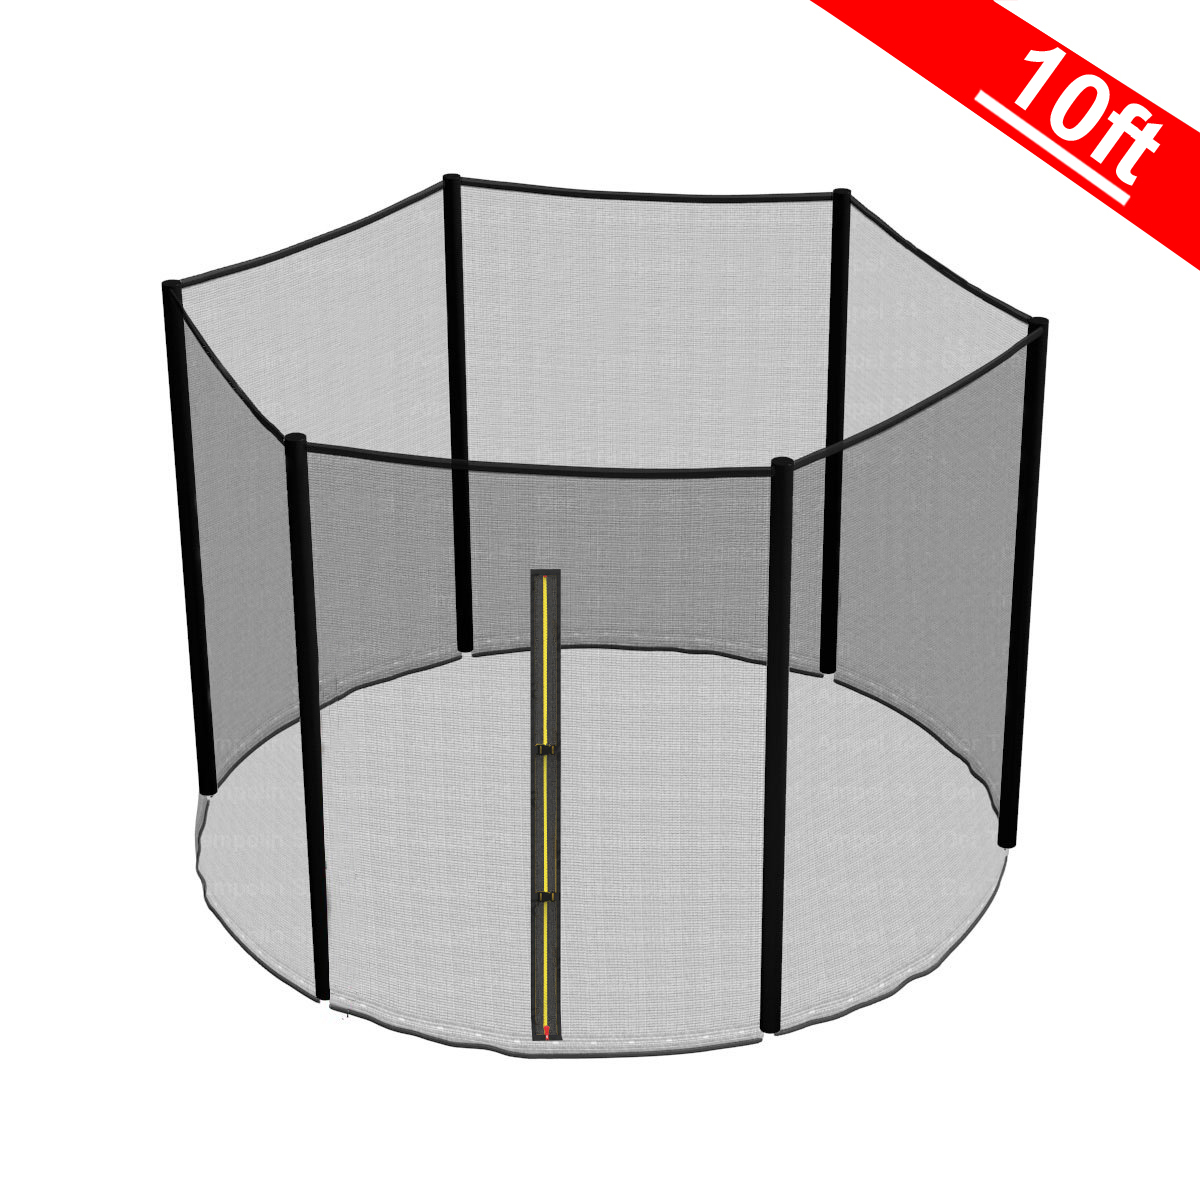 10ft 6 Pole Trampoline Replacement Safety Net Enclosure